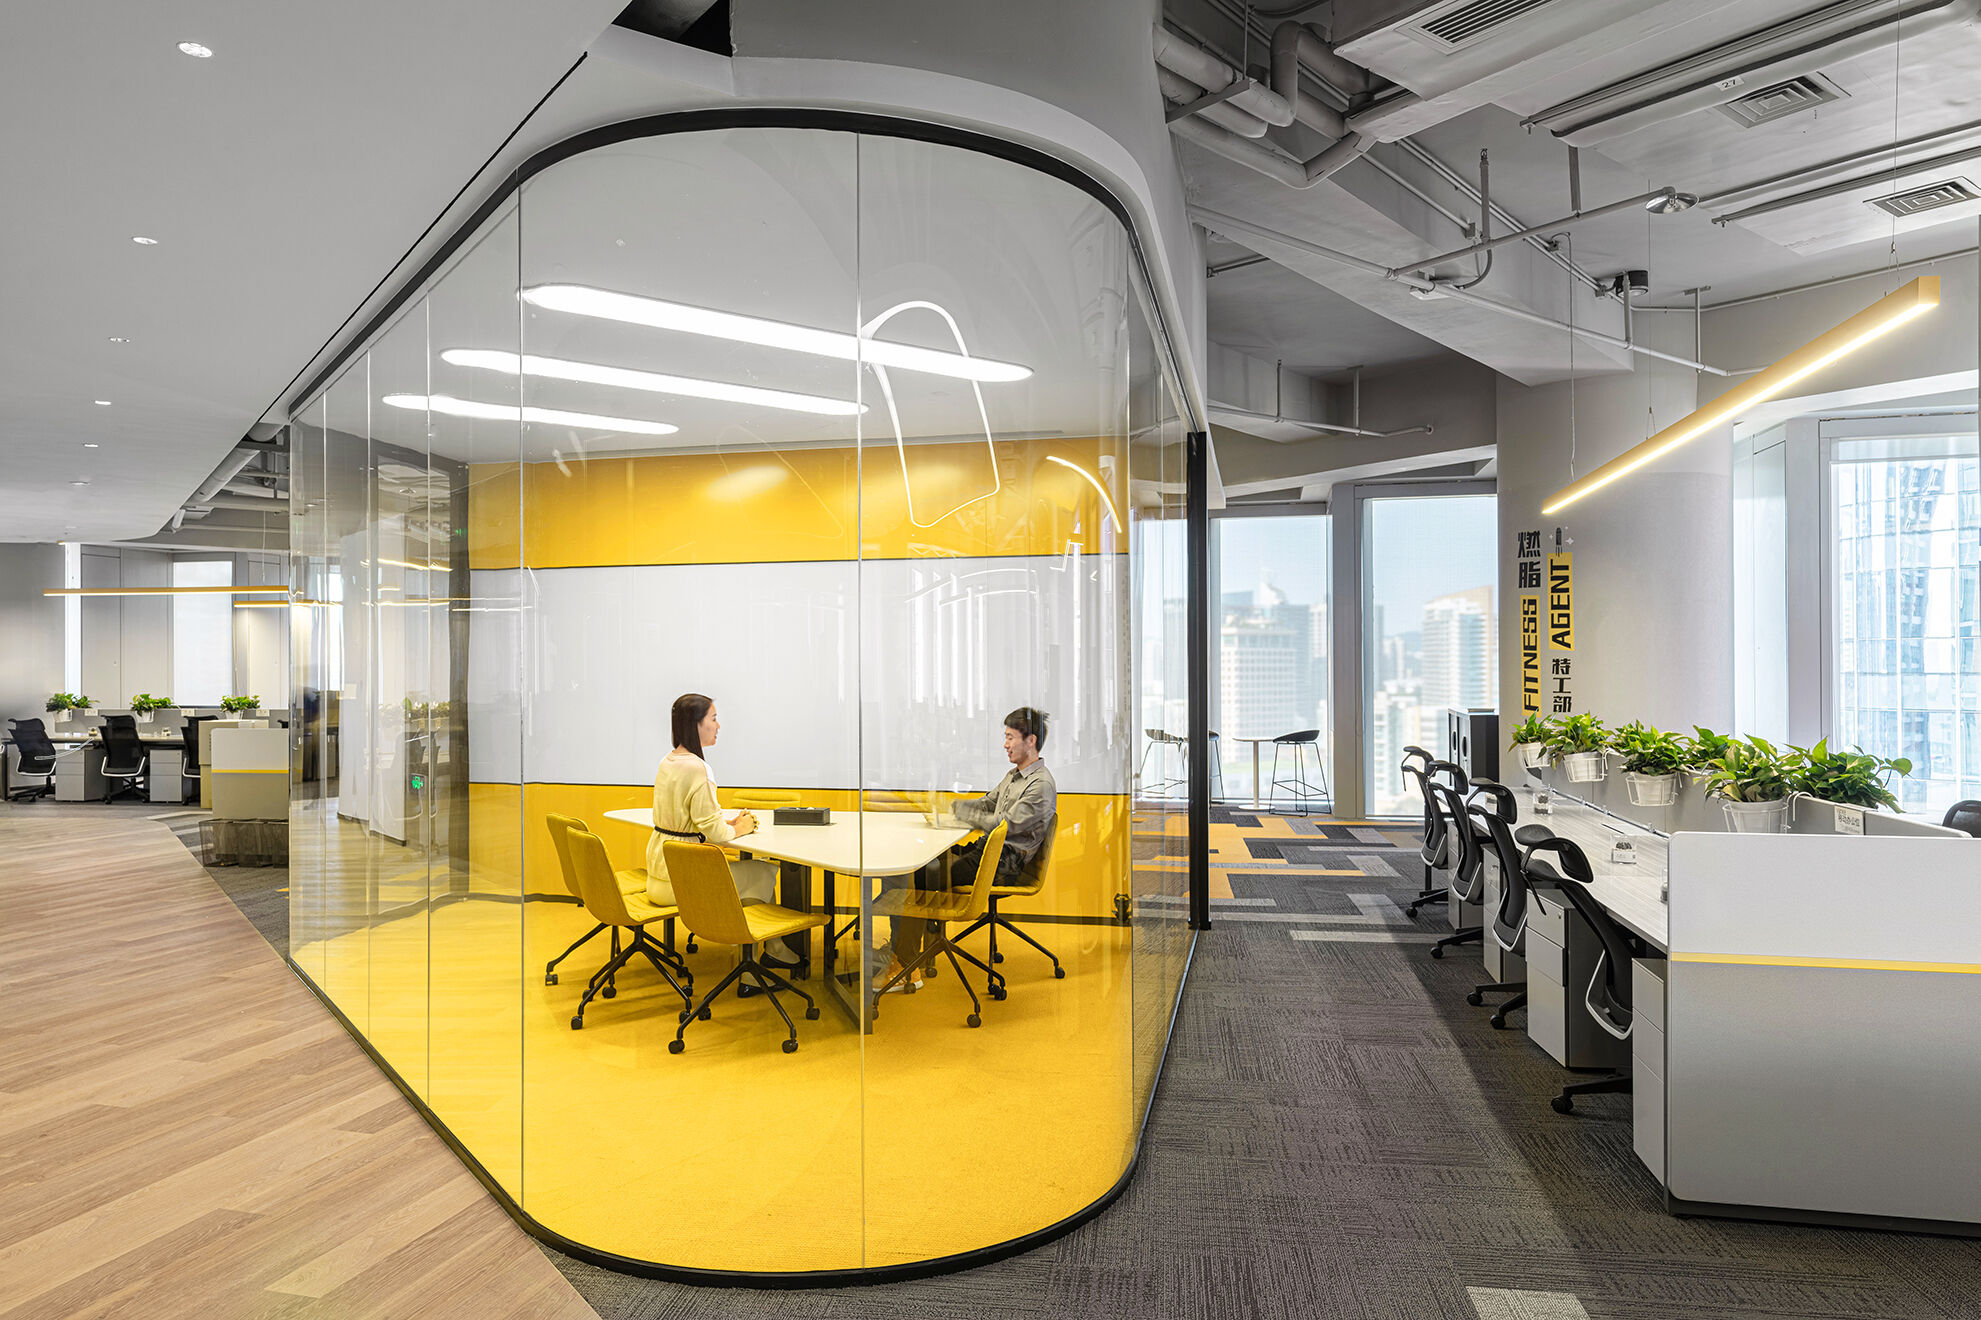 Vanke_Designed by corporate interior design firms such as Space Matrix